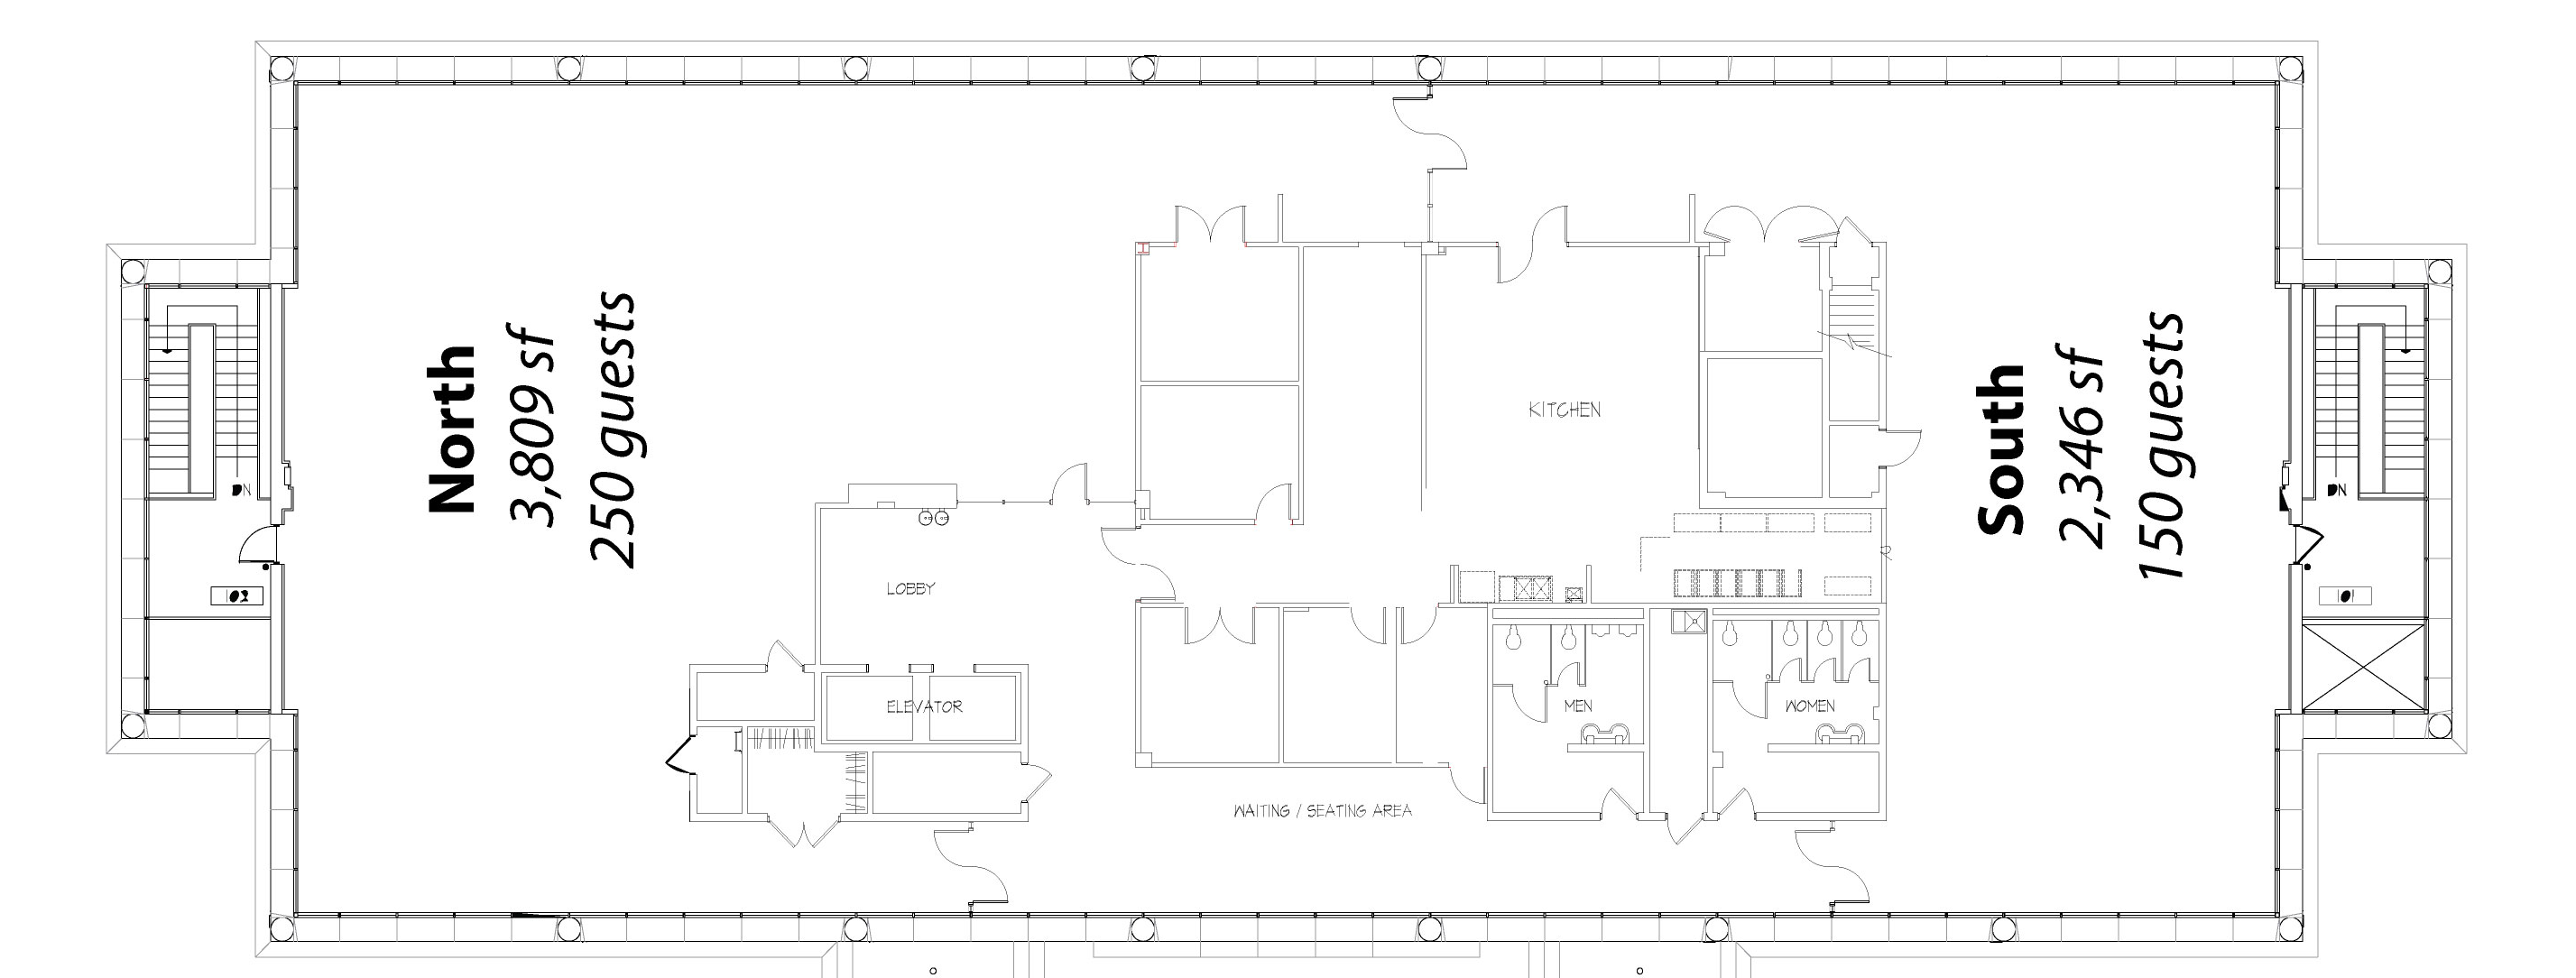 Floor plan of CityView